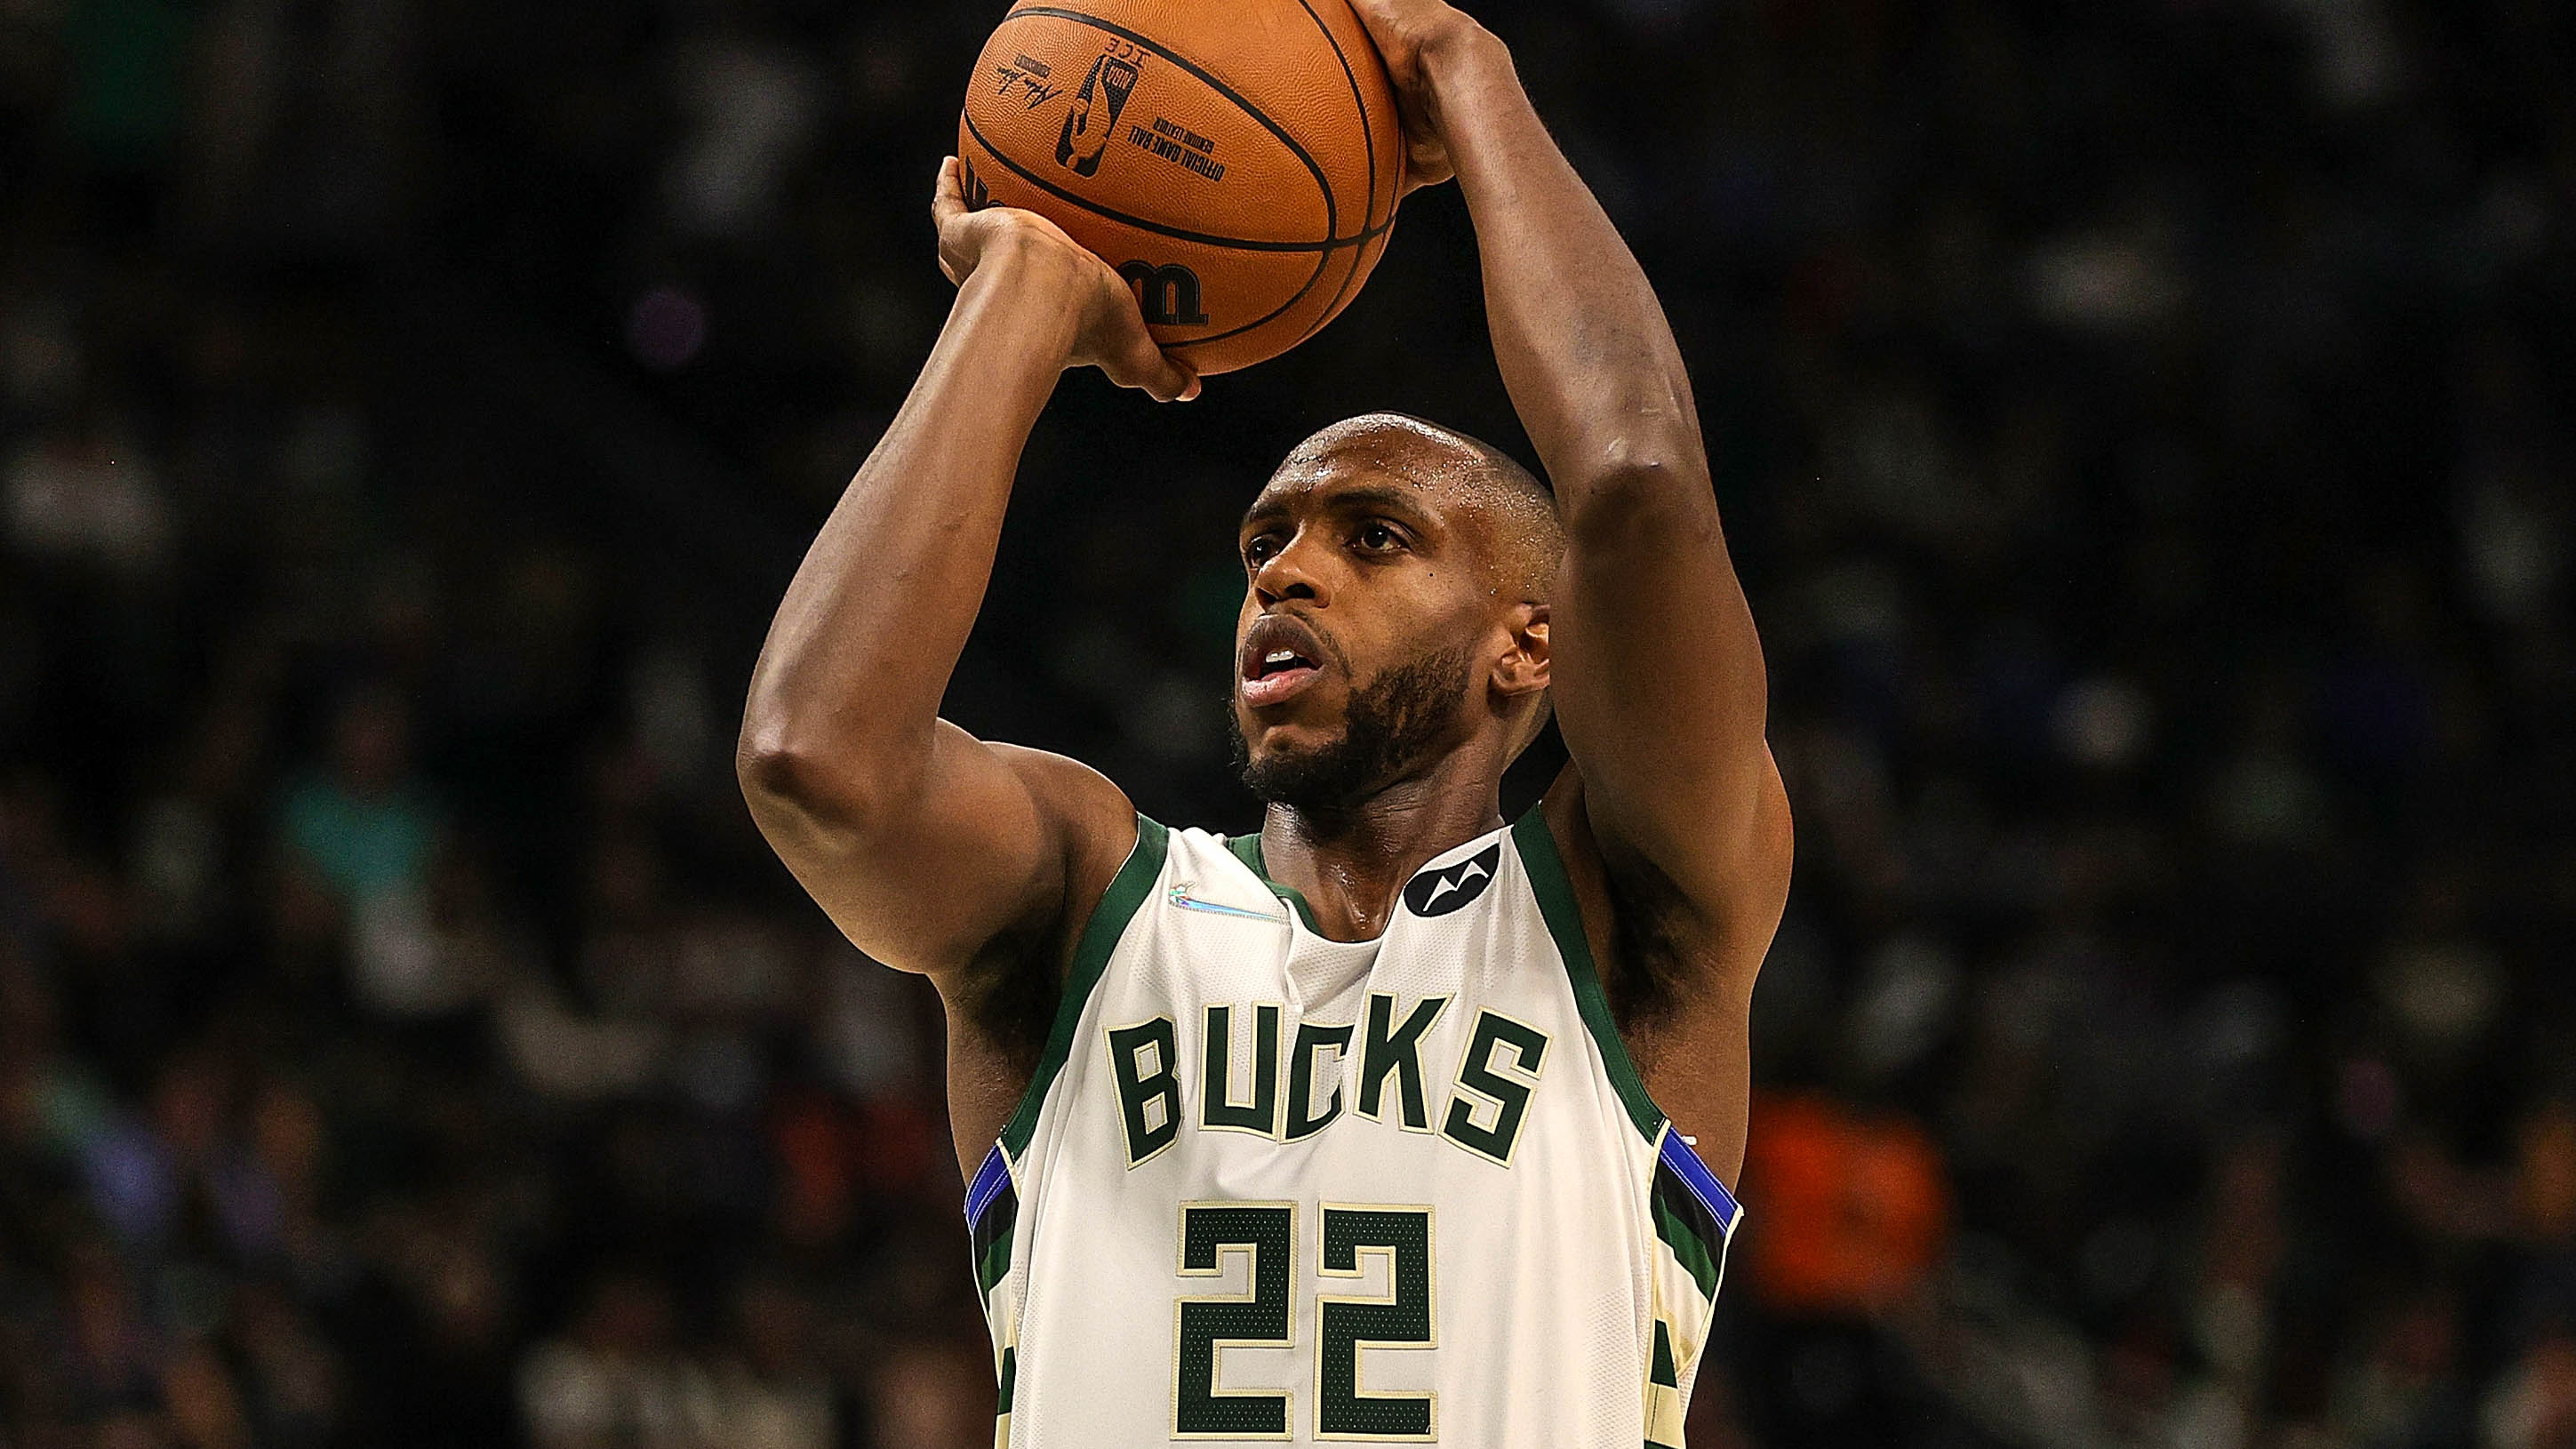 Khris Middleton 20 Points & 9 Rebounds Against The Nets | 10.19.21